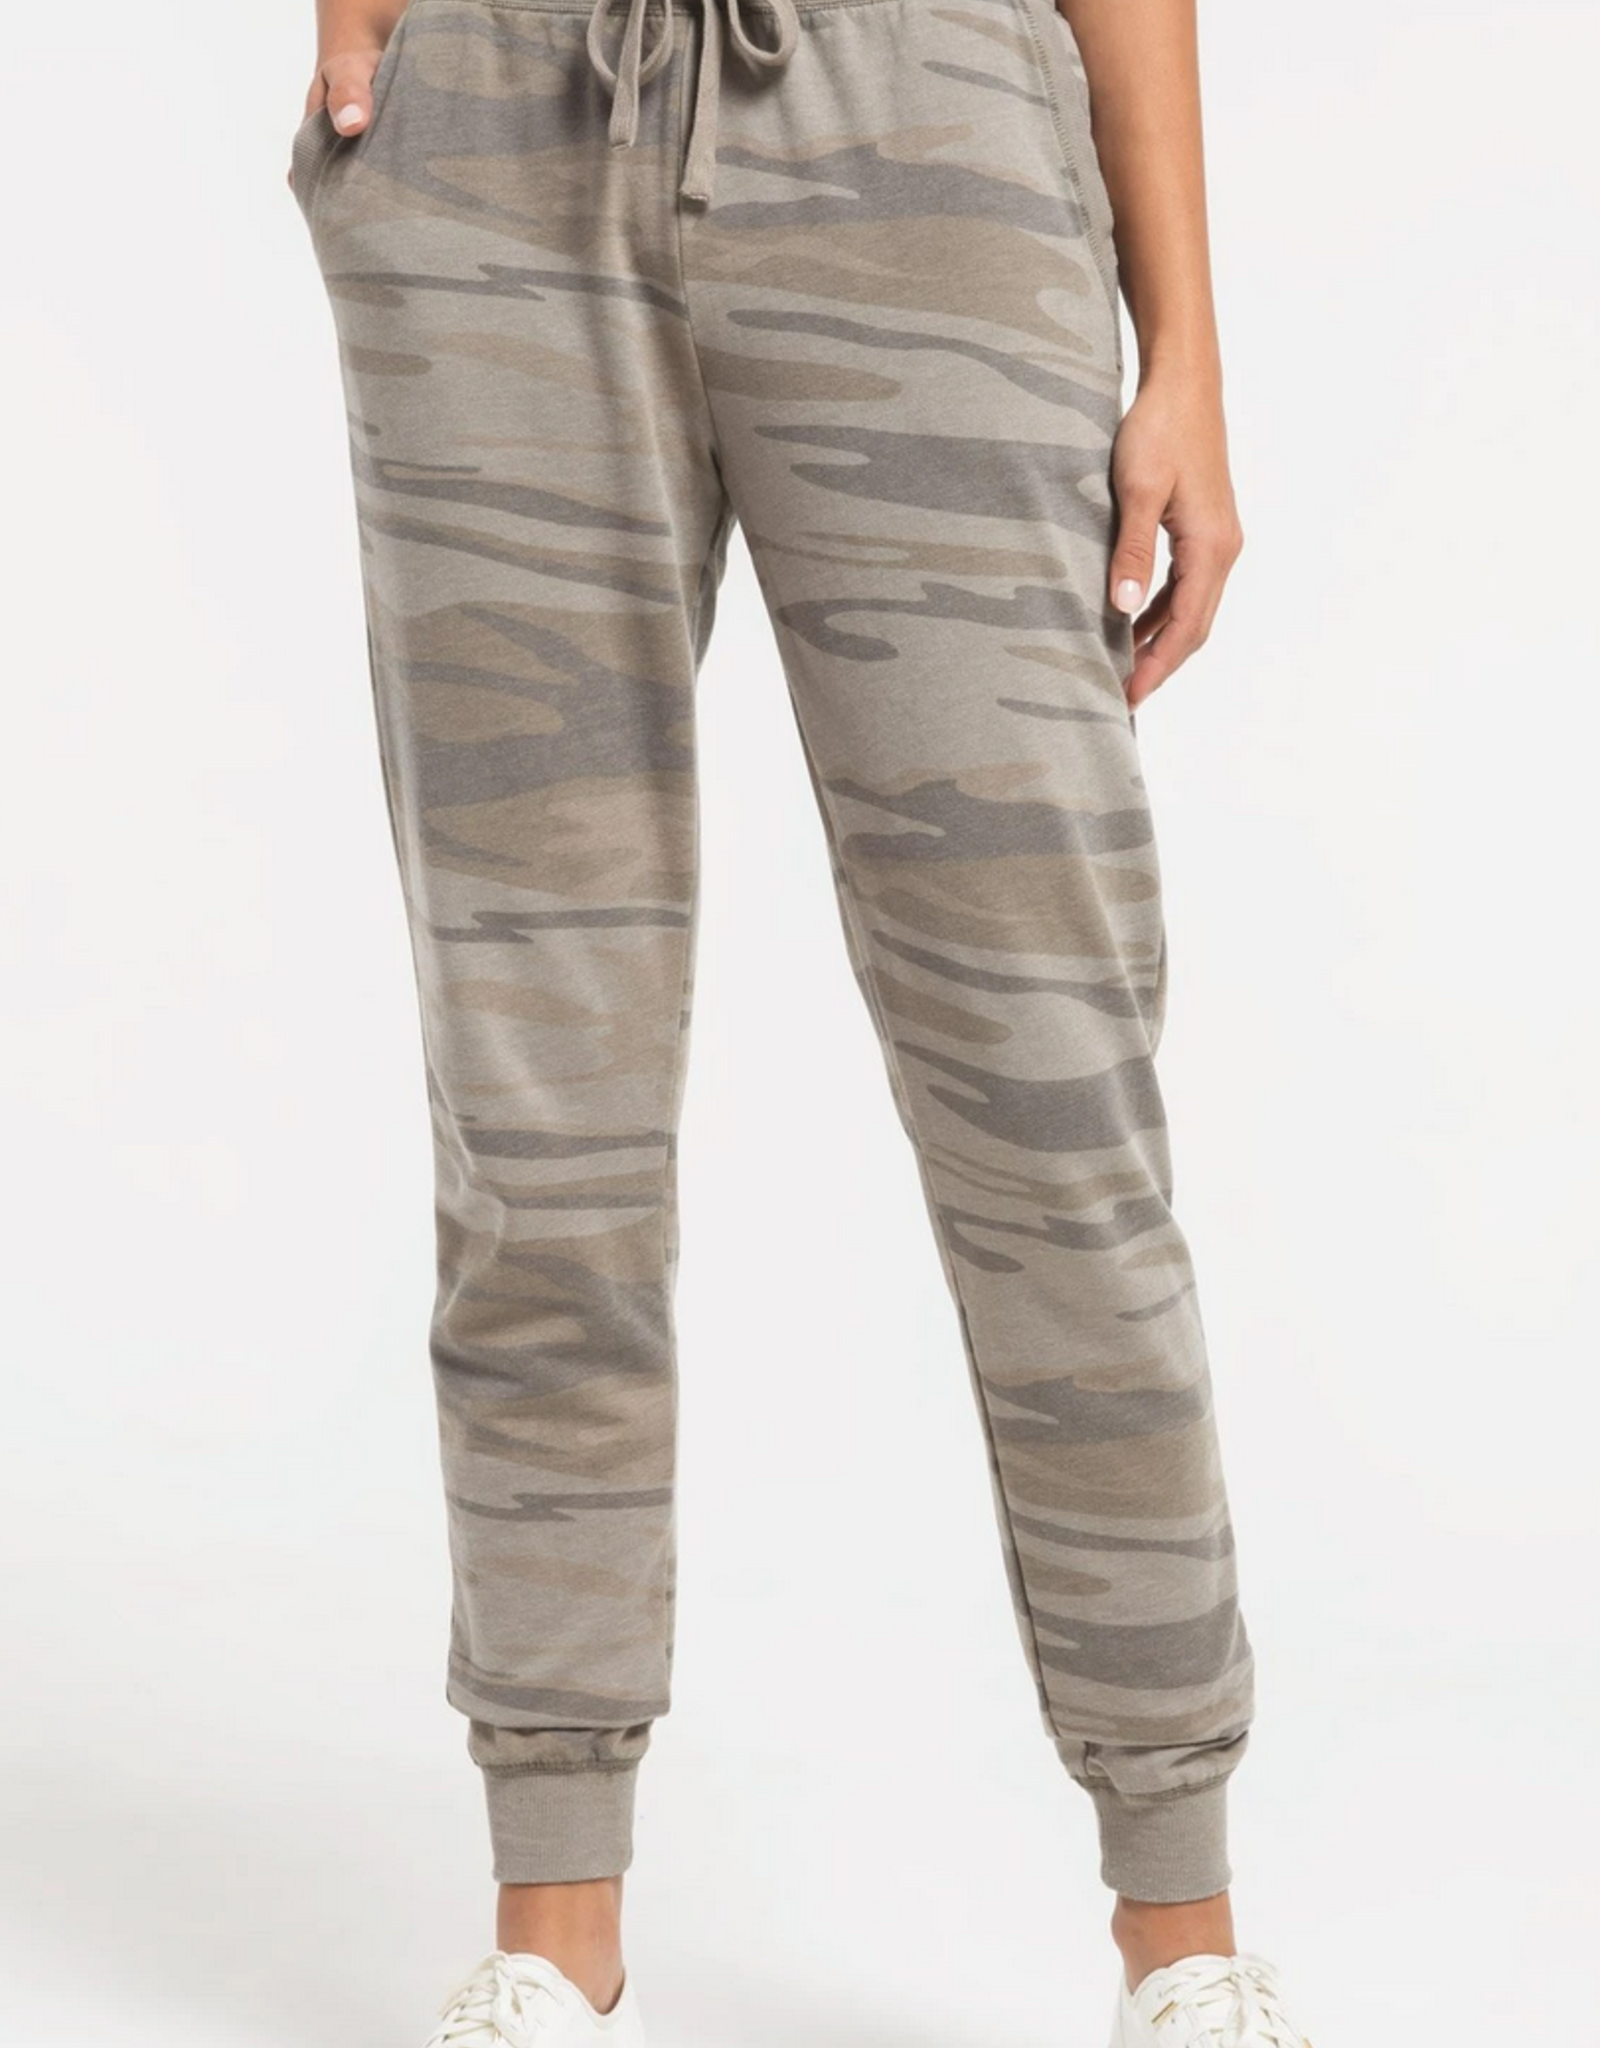 Z Supply The Camo Jogger Pant